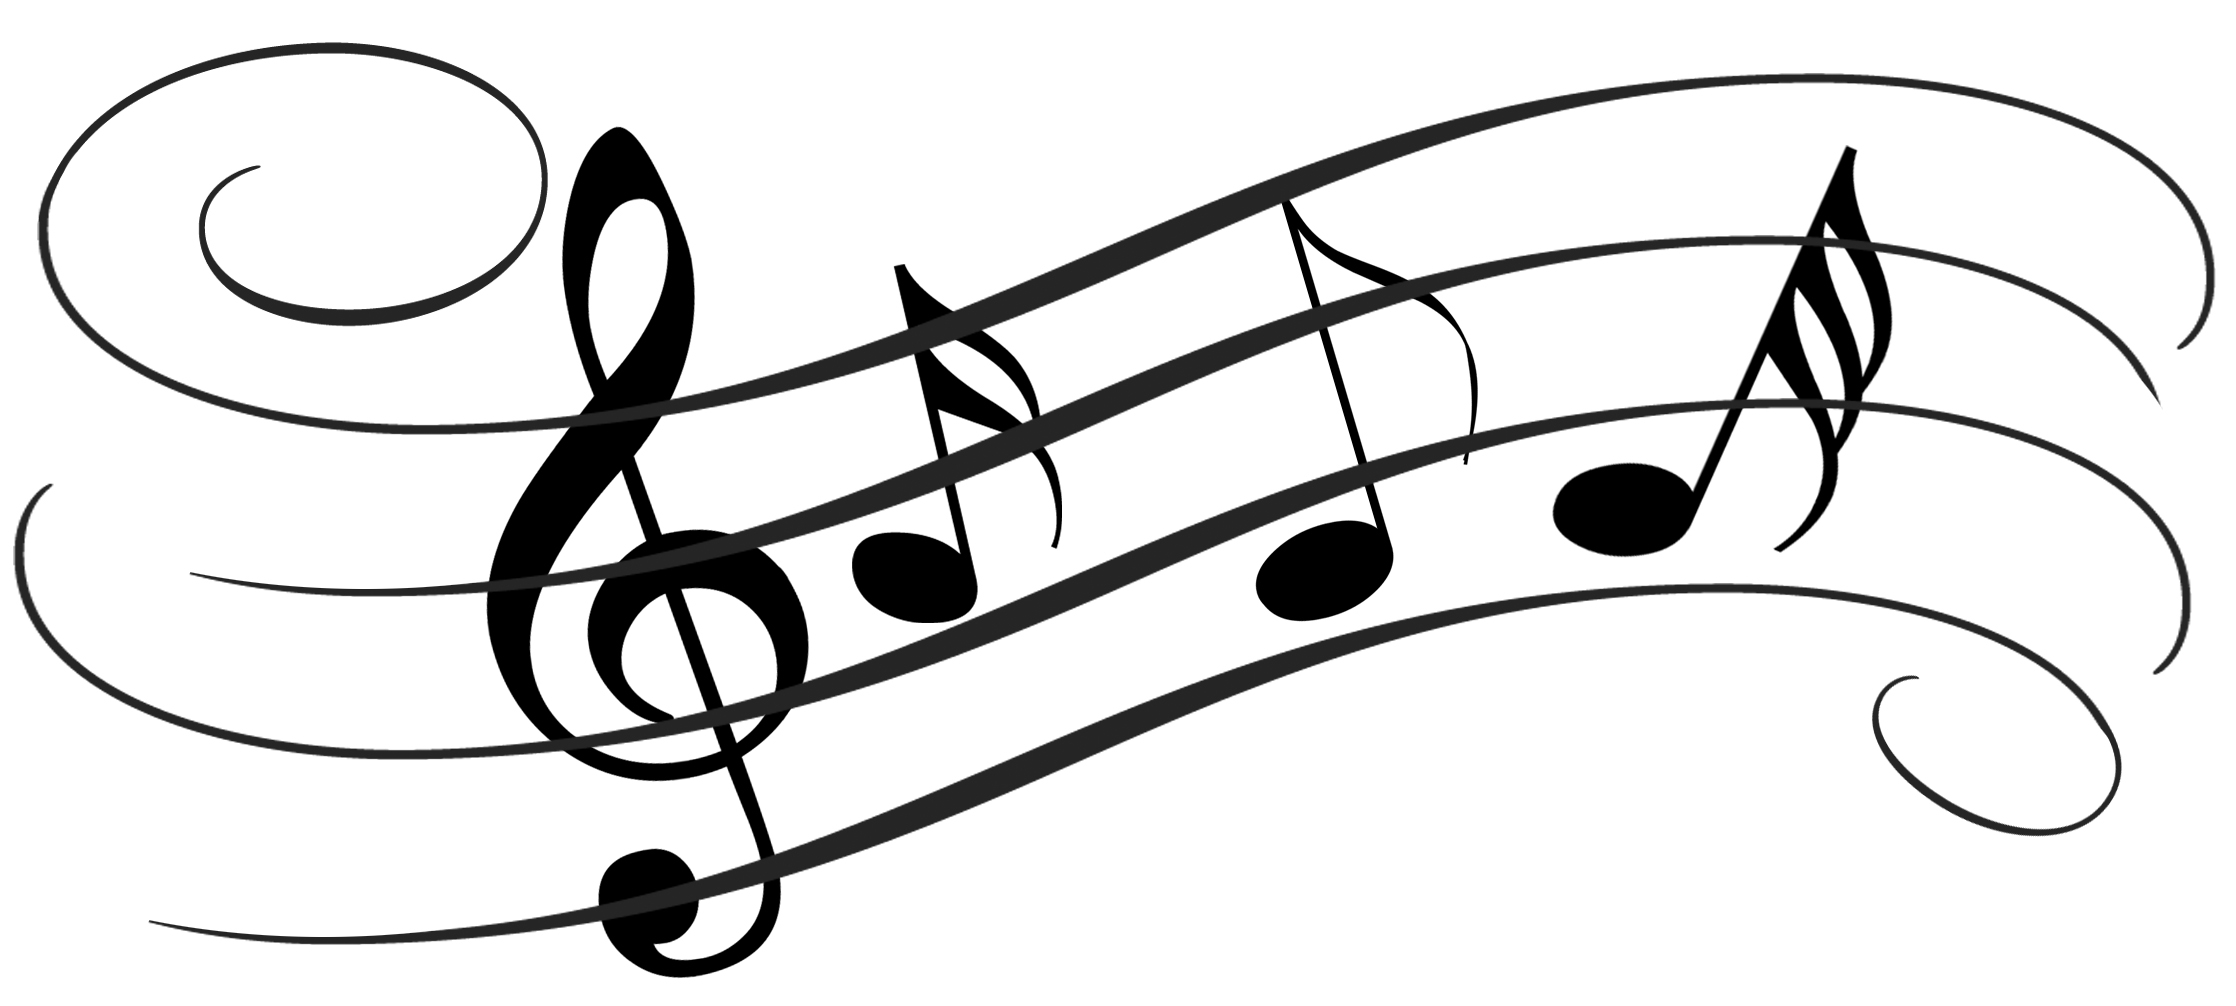 music%20notes%20clip%20art%20png